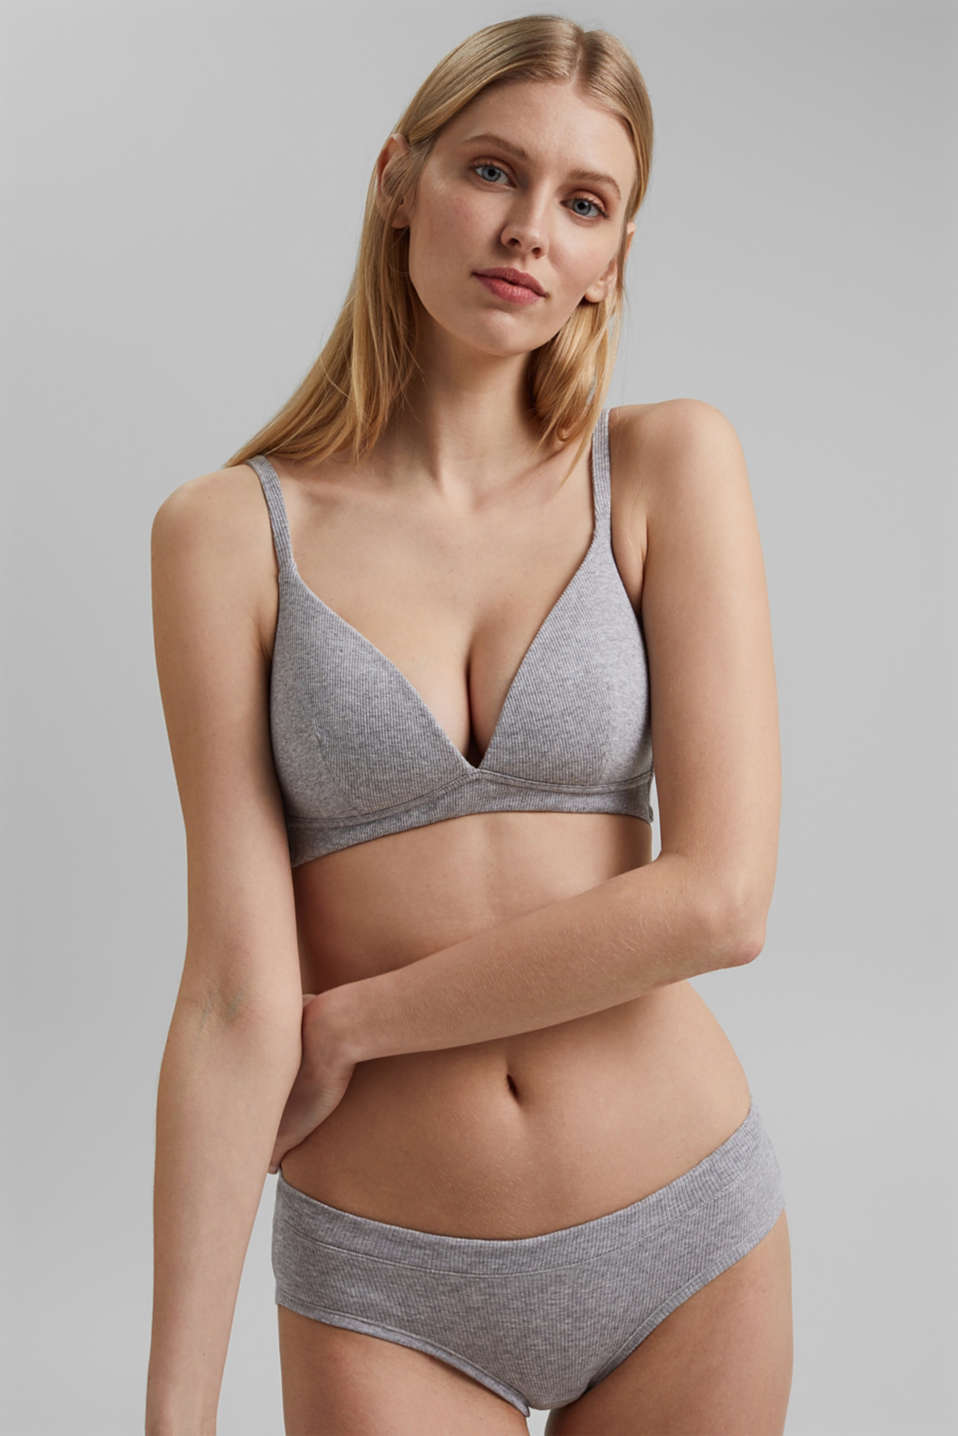 Esprit - Padded non-wired bra containing organic cotton